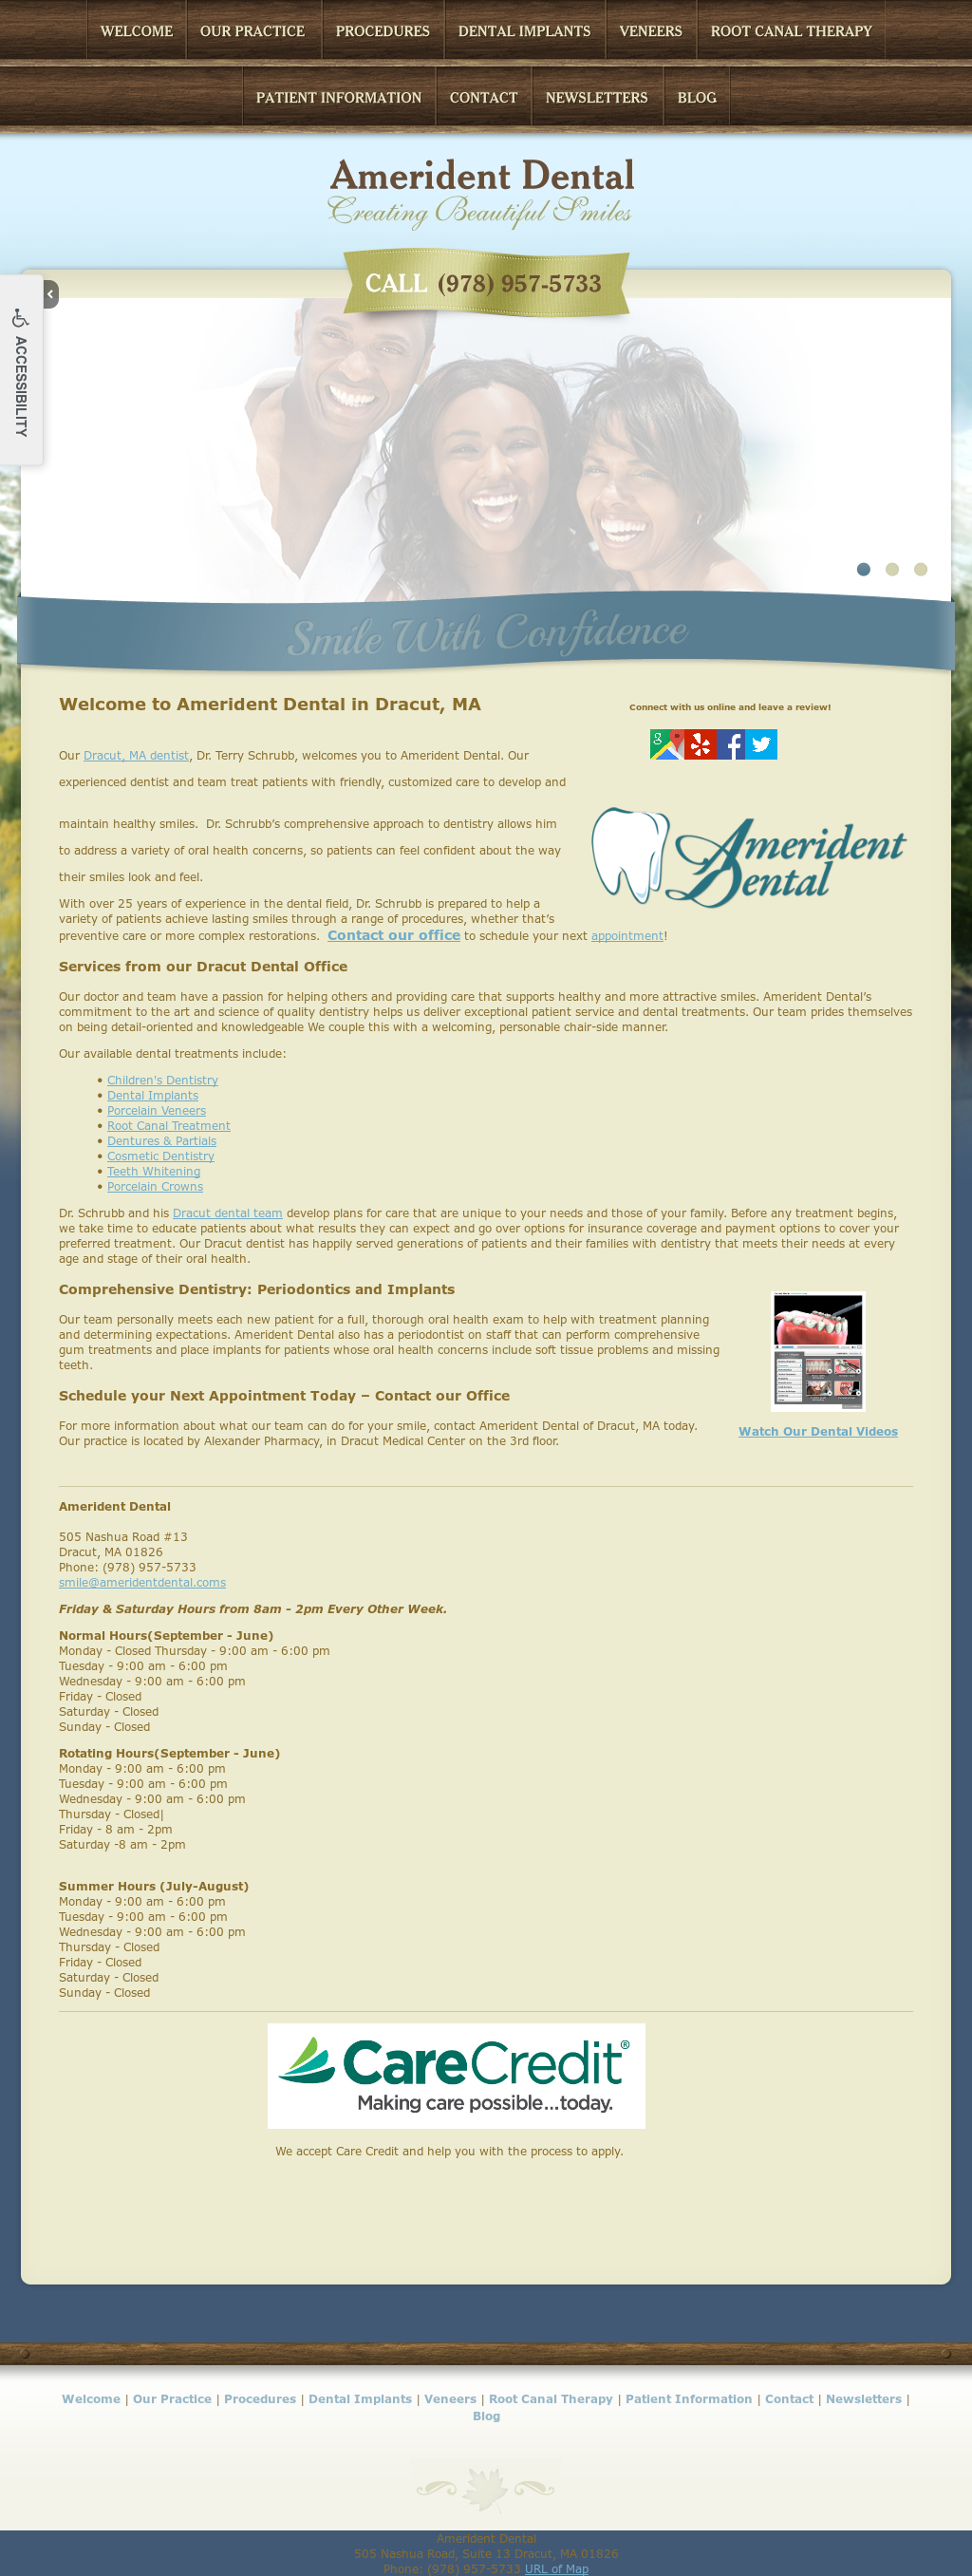 Amerident Dental Competitors, Revenue and Employees - Owler Company